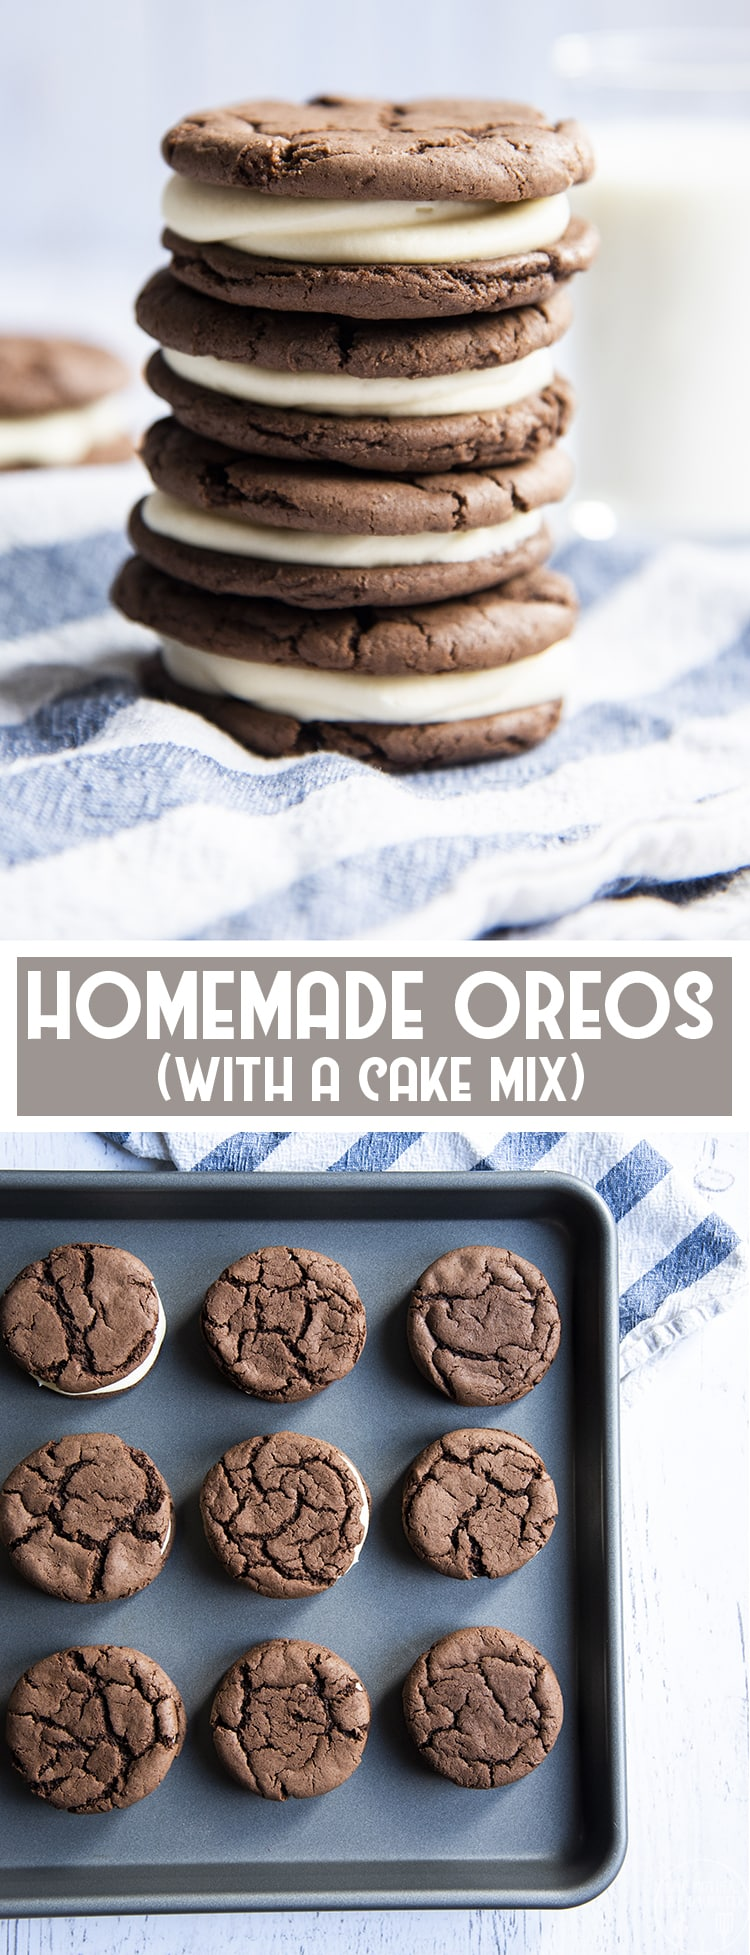 These homemade oreos are so easy to make, starting with a cake mix for the cookie base. They're soft and delicious, filled with a sweet cream cheese frosting in the middle!